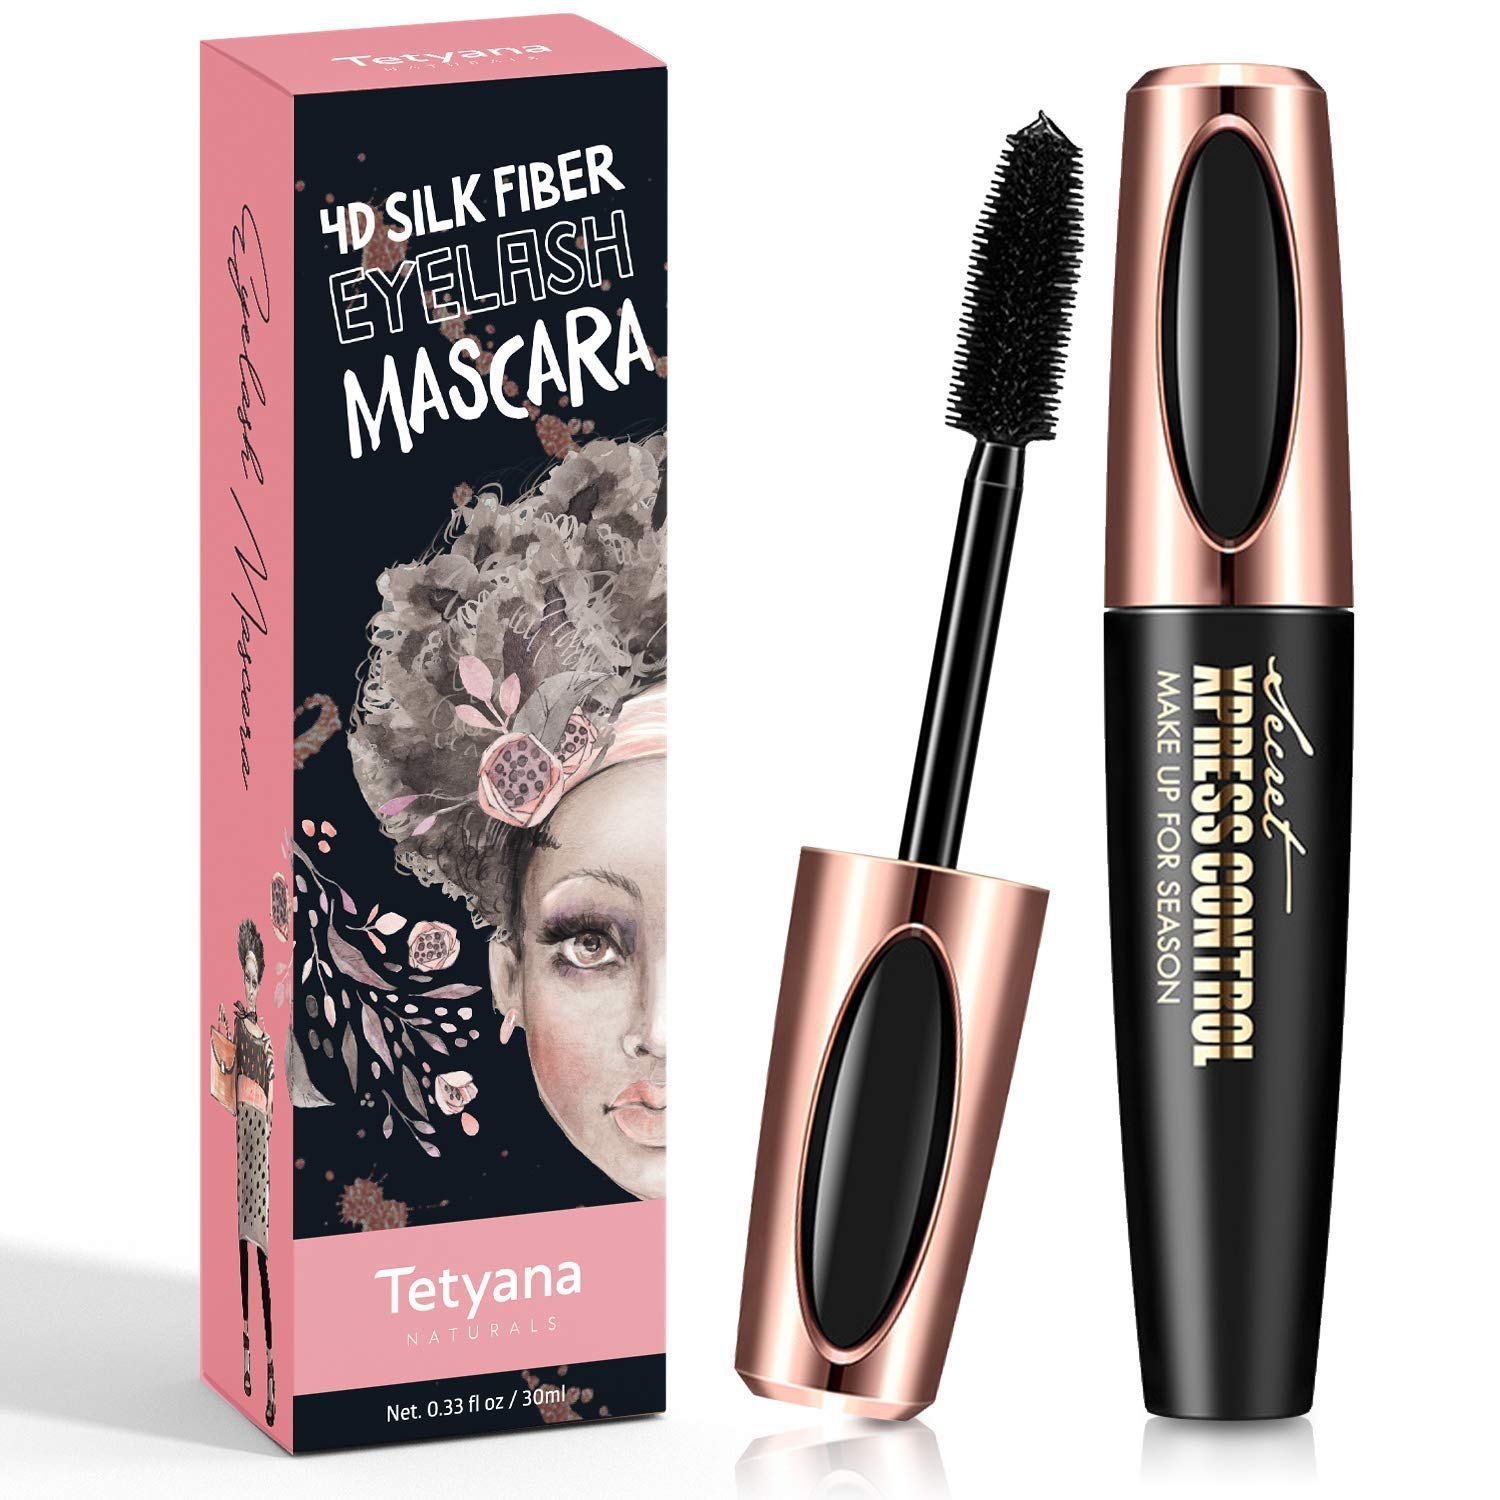 f3d43098e8b 4D Silk Fiber Lash Mascara Waterproof Natural Thick Thickening and  Lengthening Mascara, Long Lasting Charming